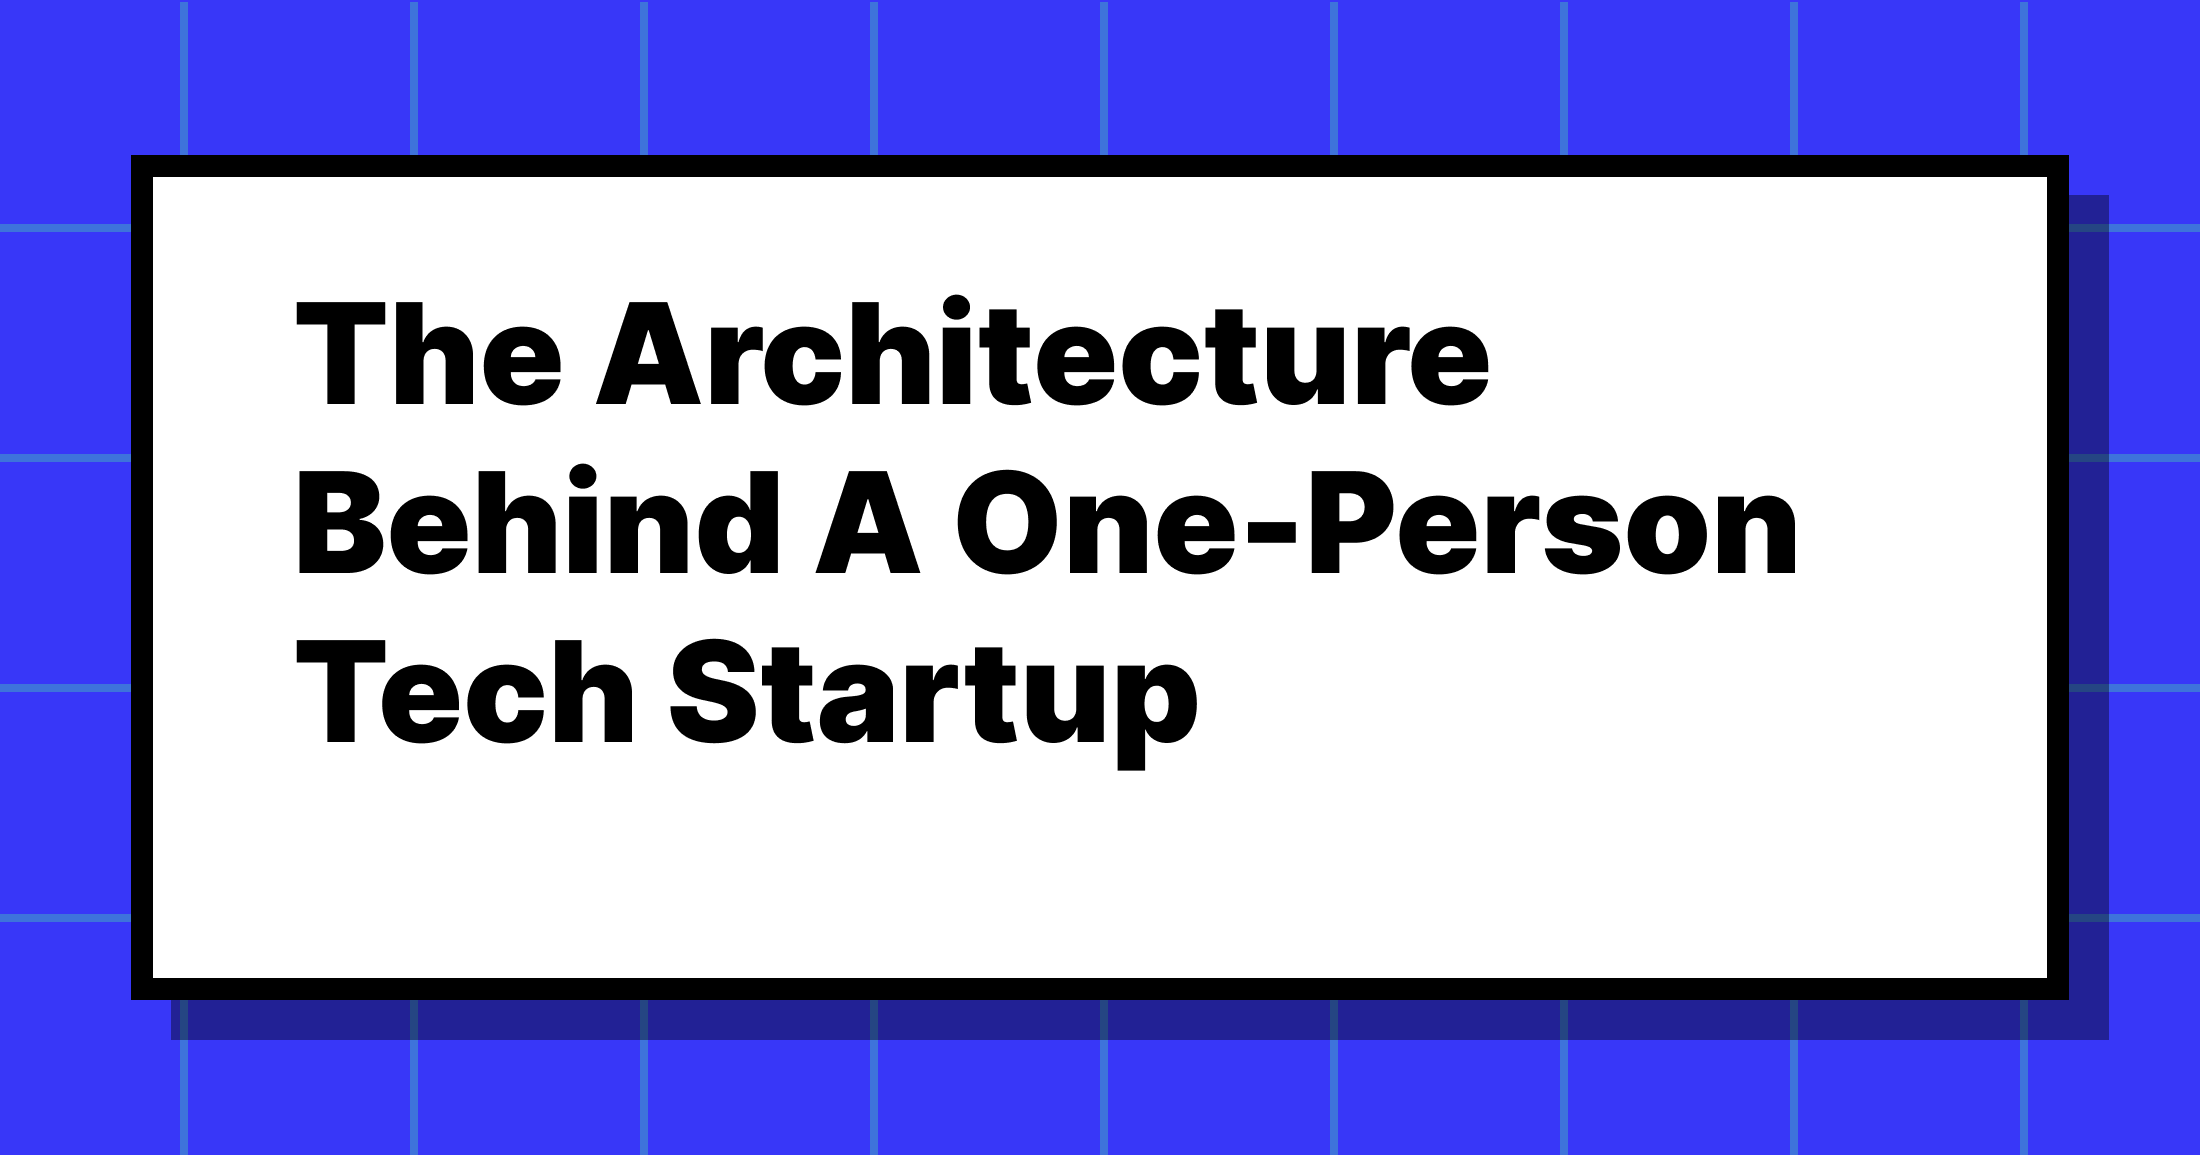 The Architecture Behind A One-Person Tech Startup